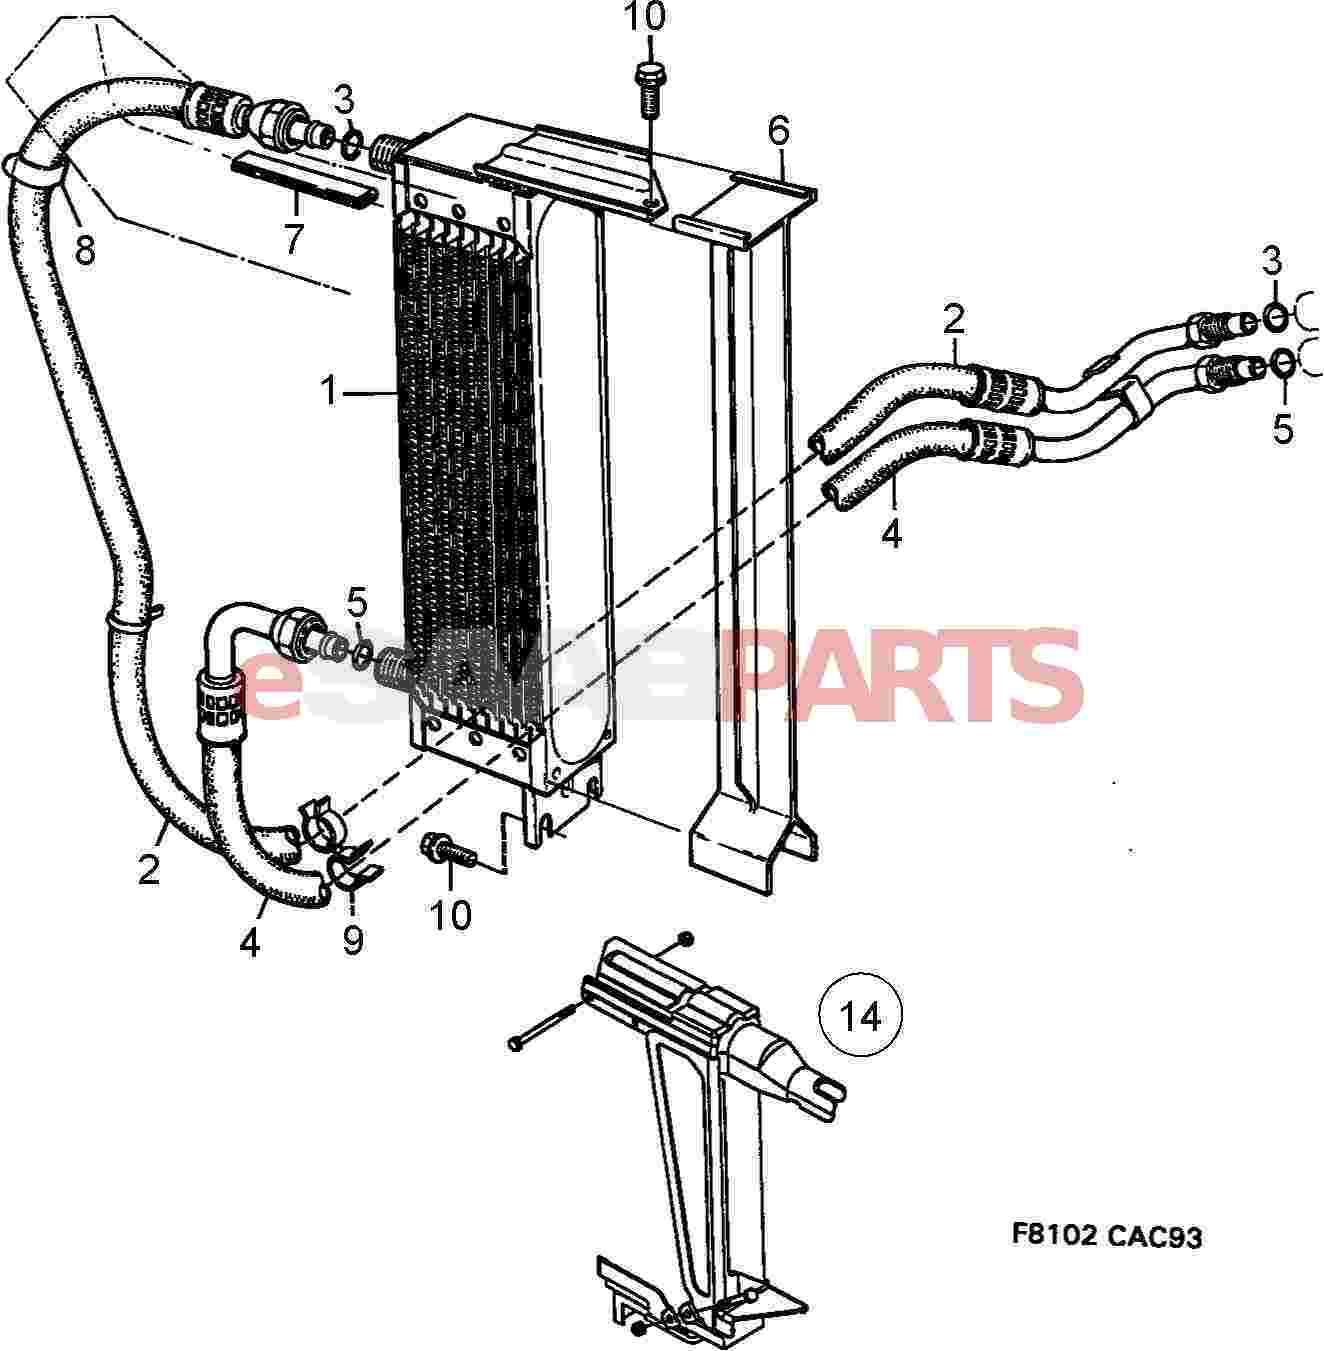 4725867 saab oil cooler genuine saab parts from esaabparts com rh esaabparts com 1990 Saab 9000 Engine Pontiac Sunbird Engine Diagram